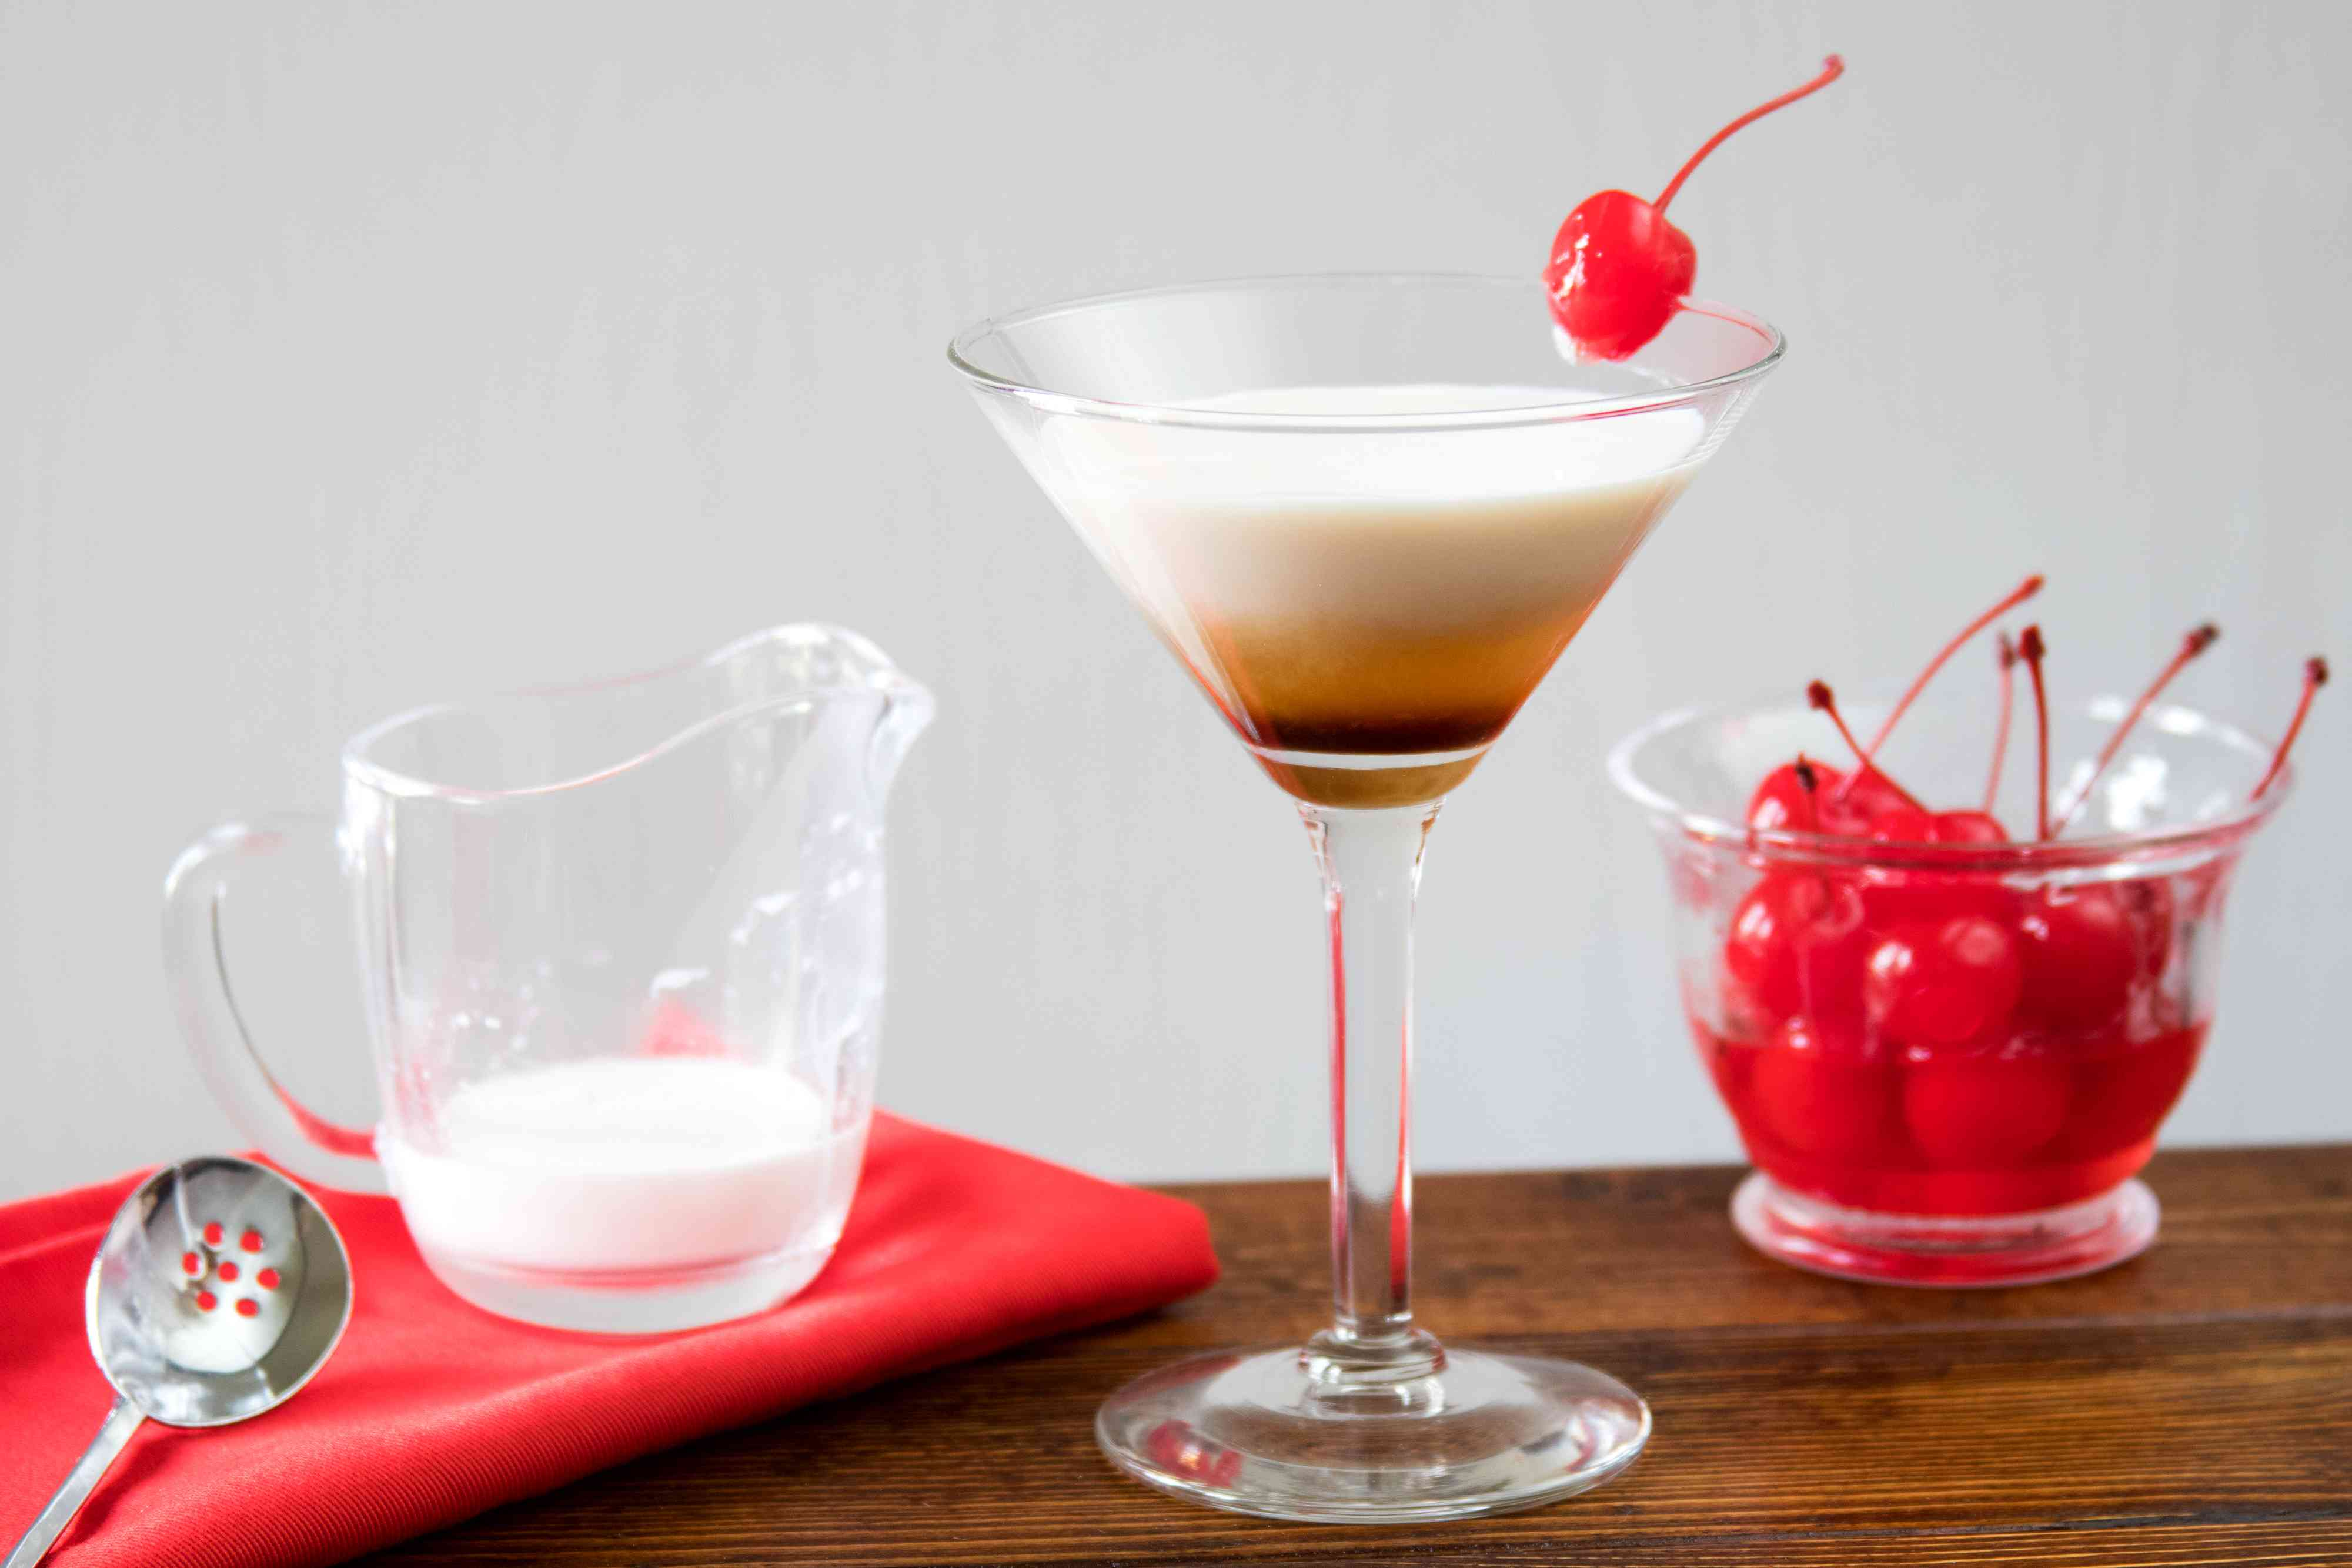 Angel's Tip Cocktail With Dark Creme de Cacao